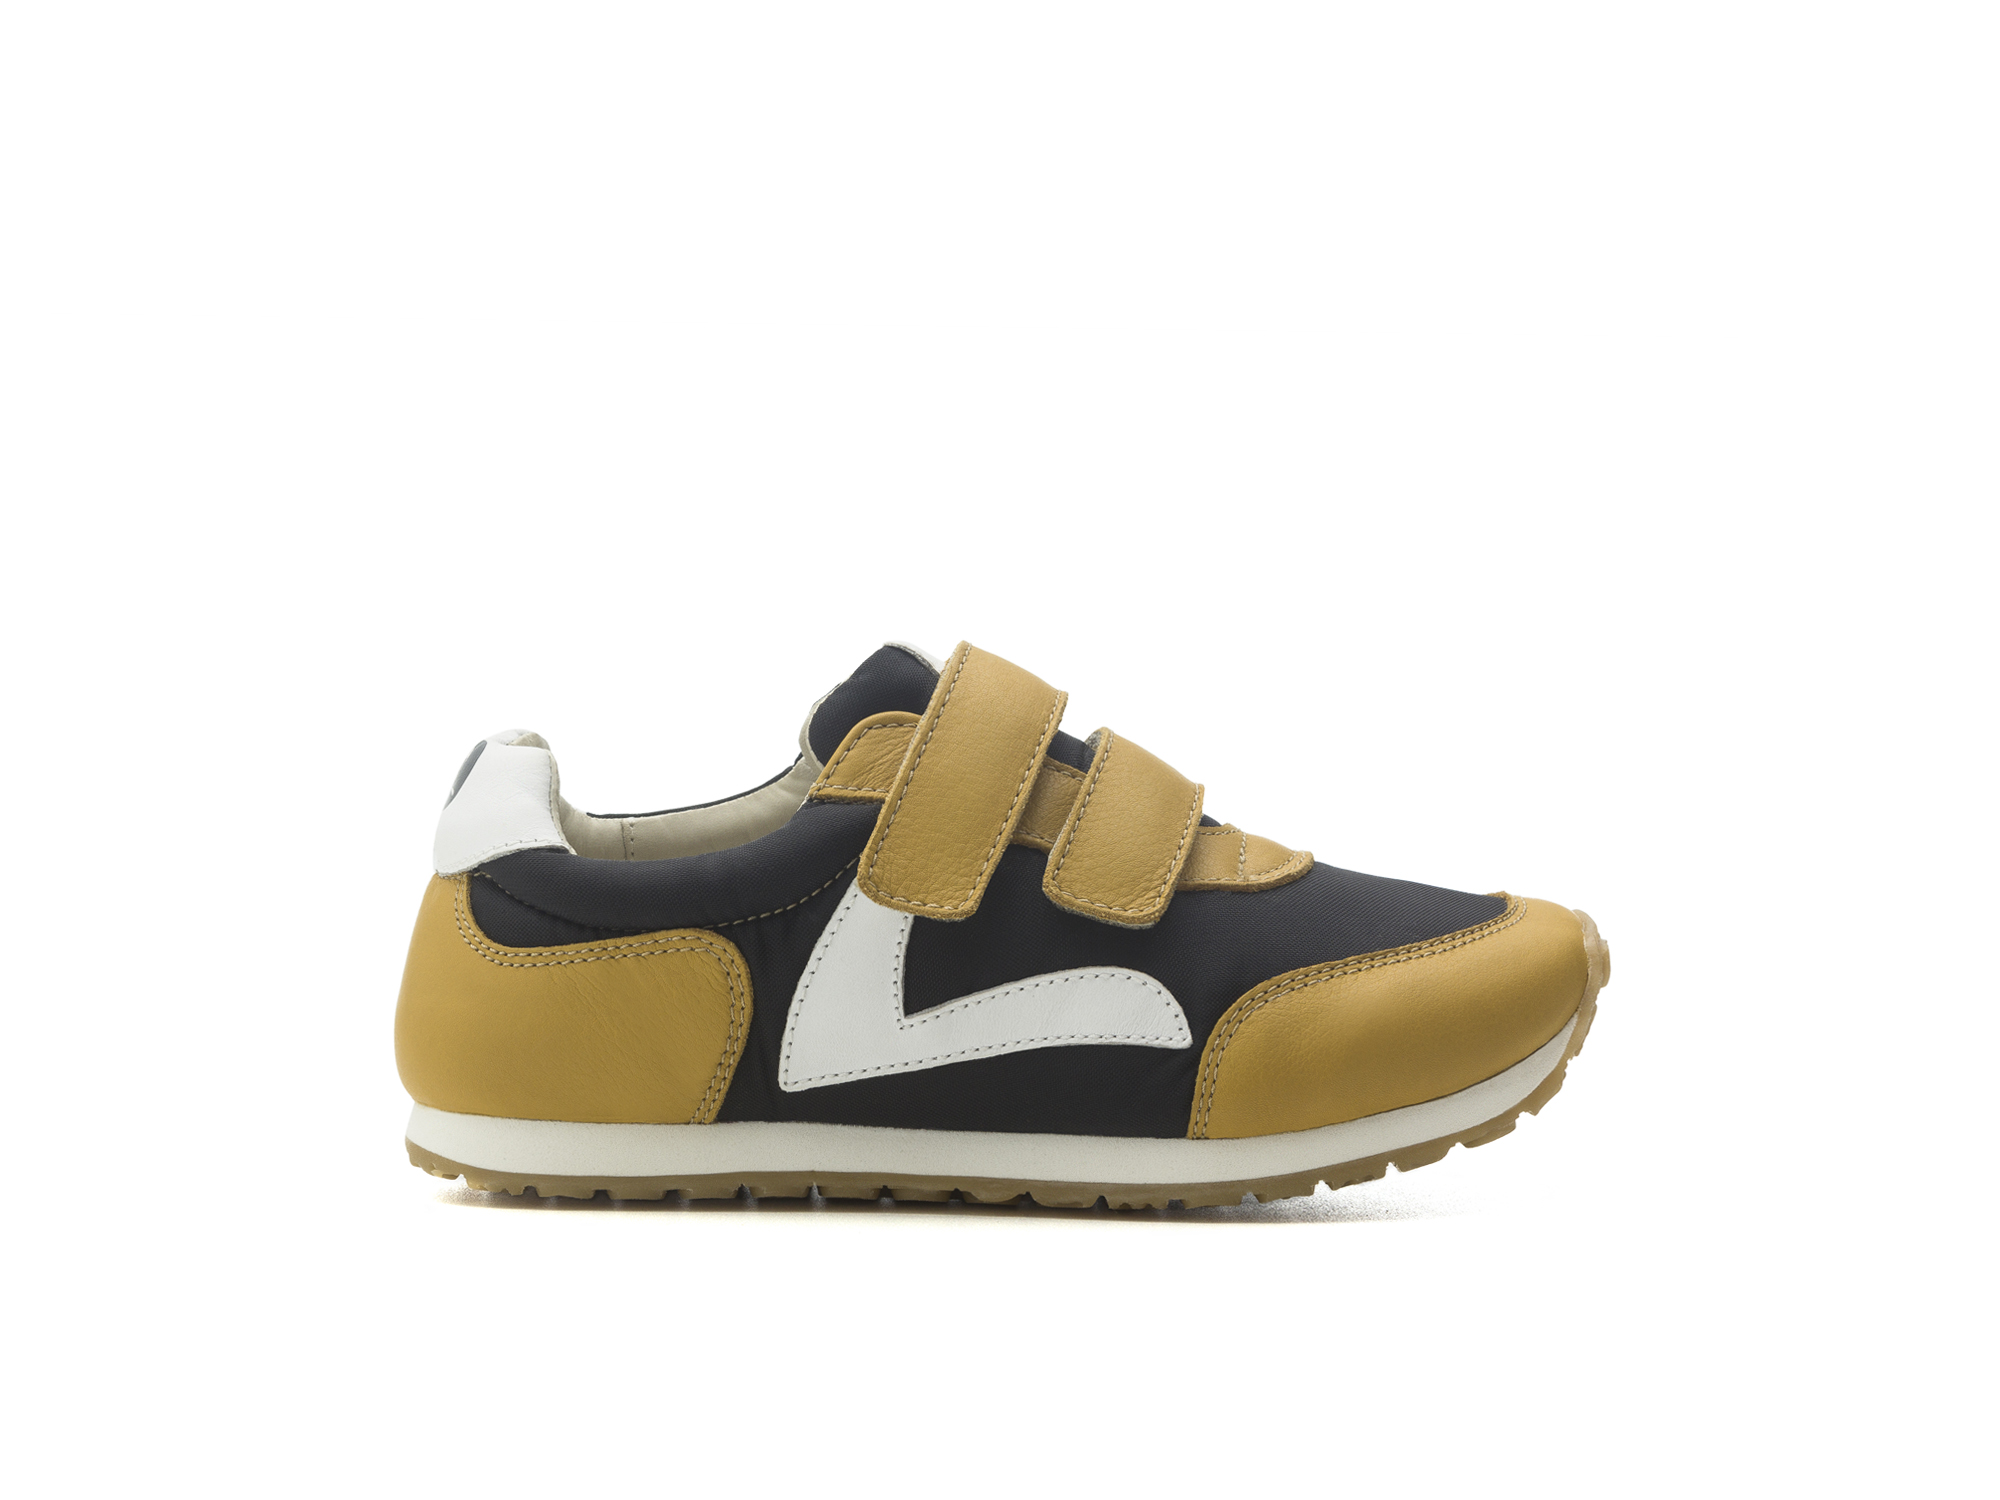 Tênis Jump Black Nylon/ Yellow Blur Junior 4 à 8 anos - 1